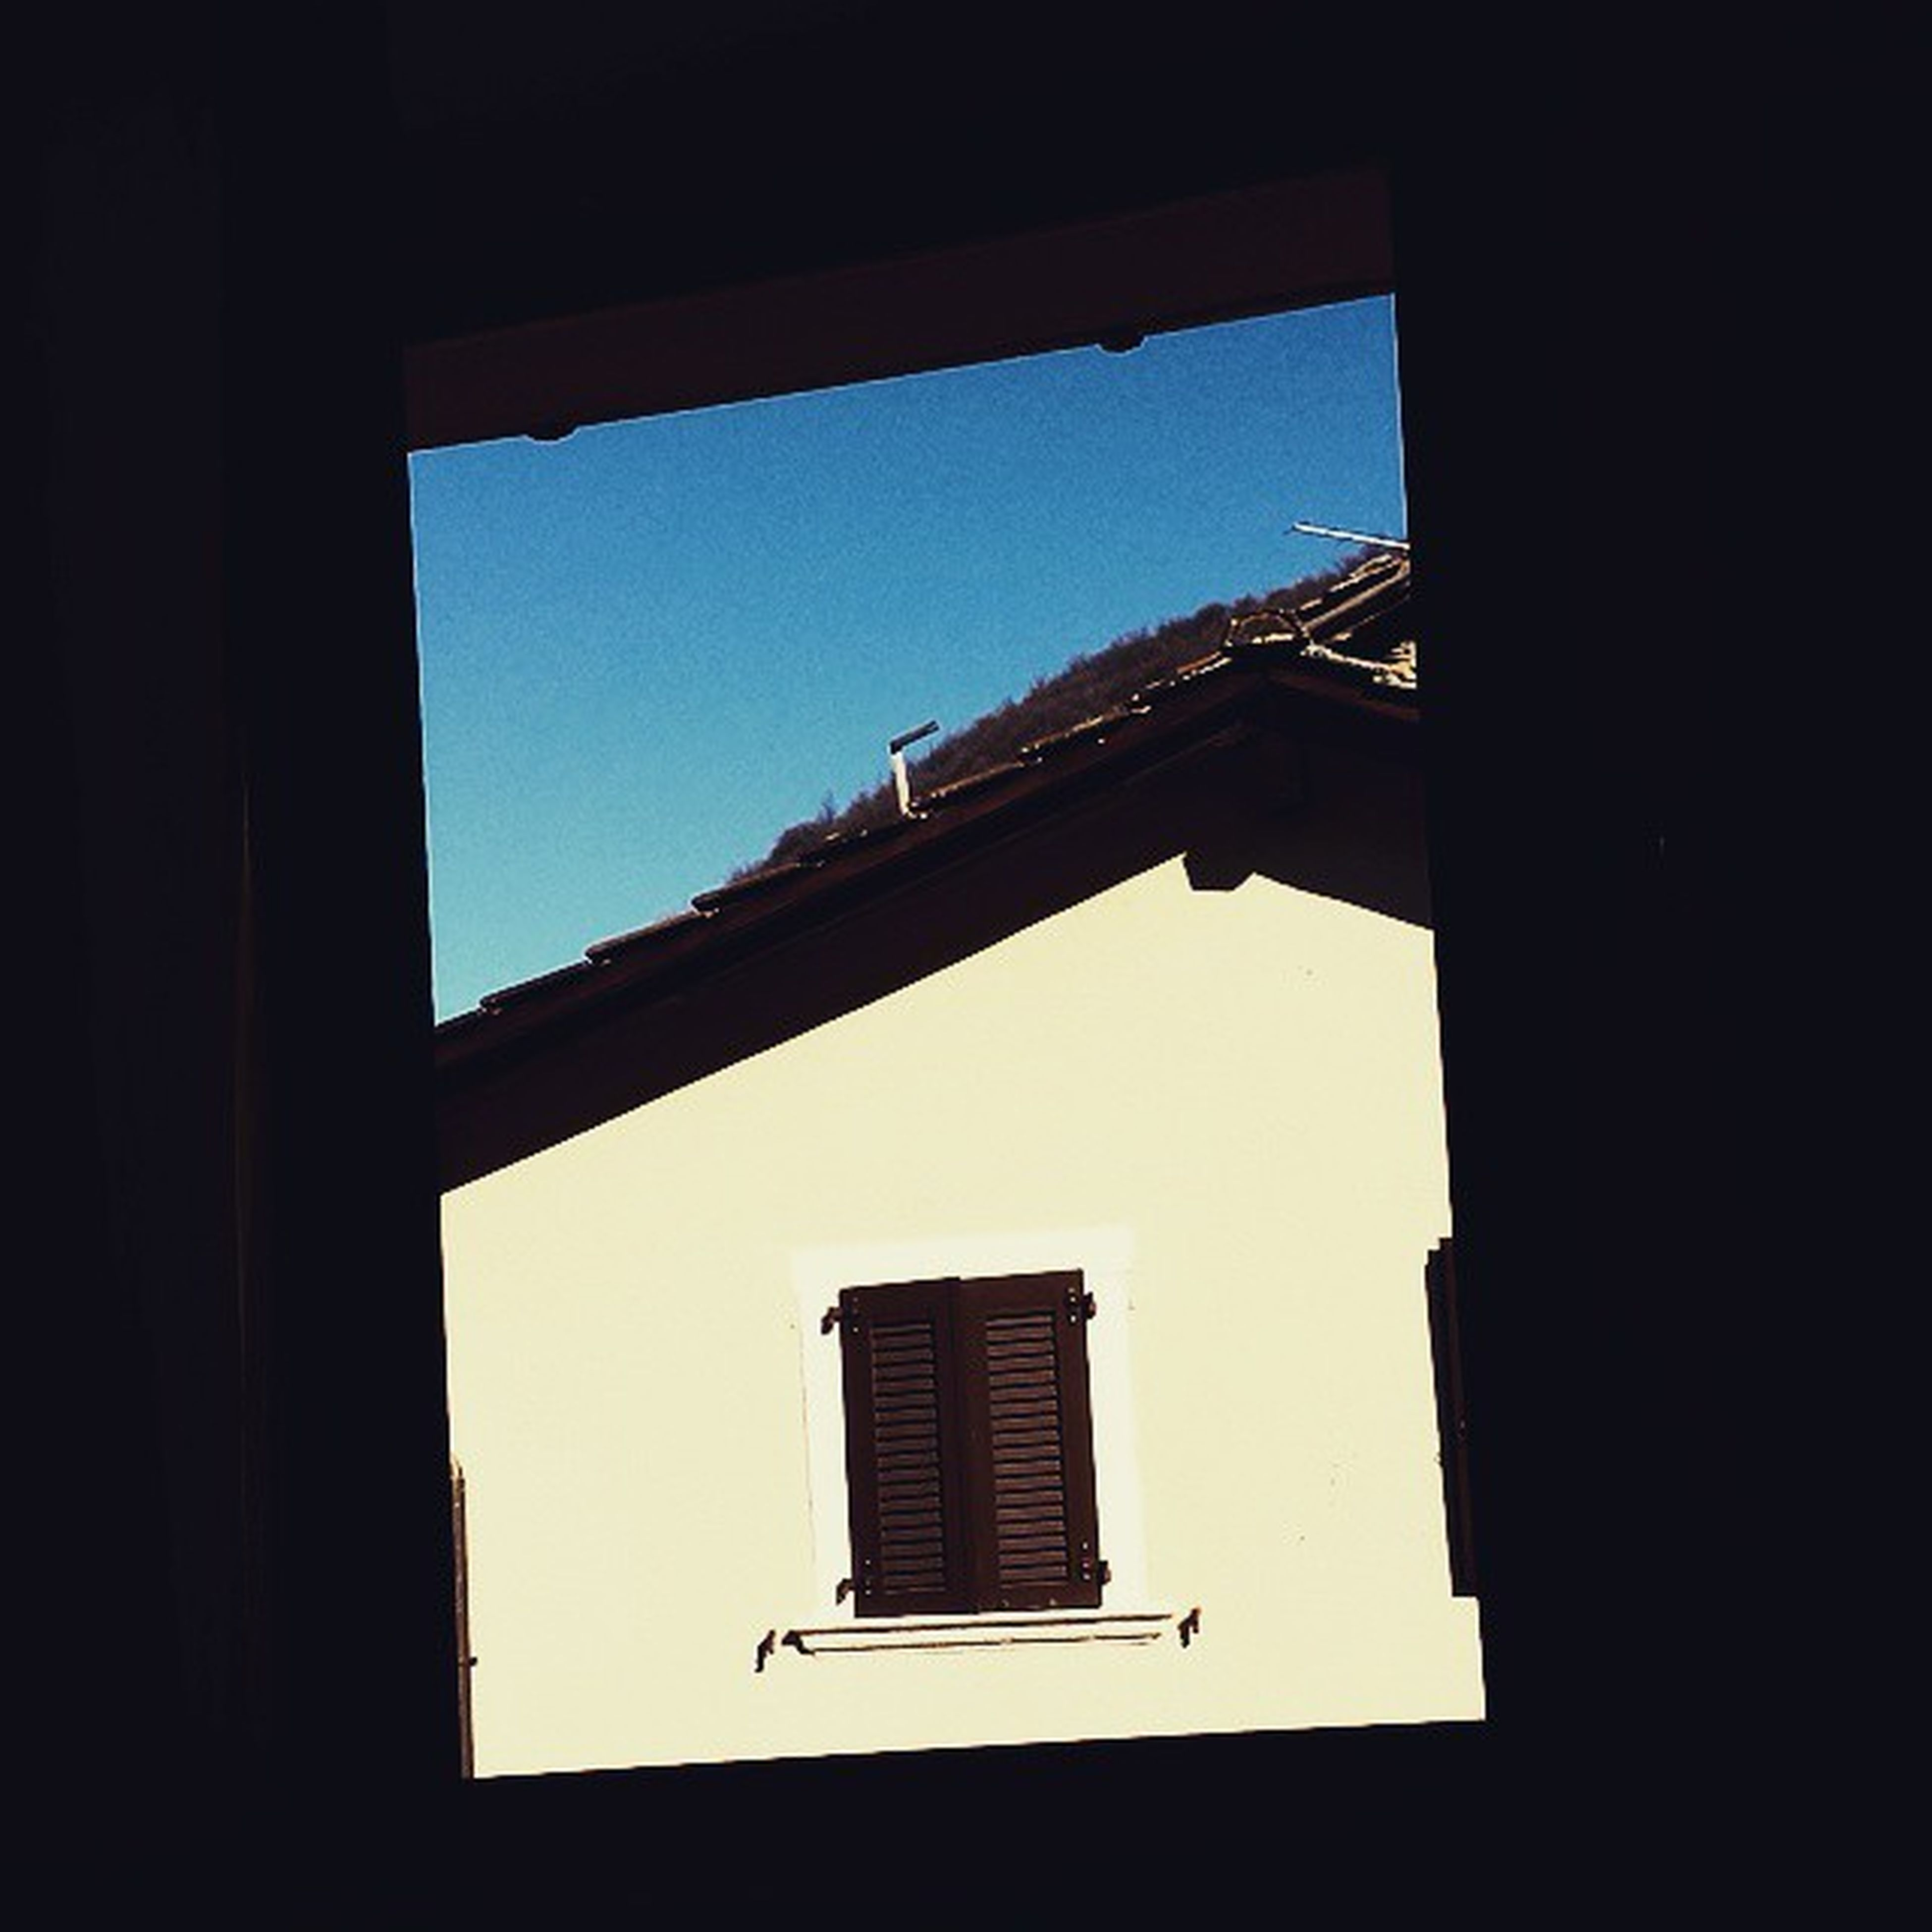 architecture, built structure, indoors, window, clear sky, building exterior, low angle view, silhouette, copy space, sky, sunlight, dark, building, day, no people, house, arch, glass - material, residential structure, shadow